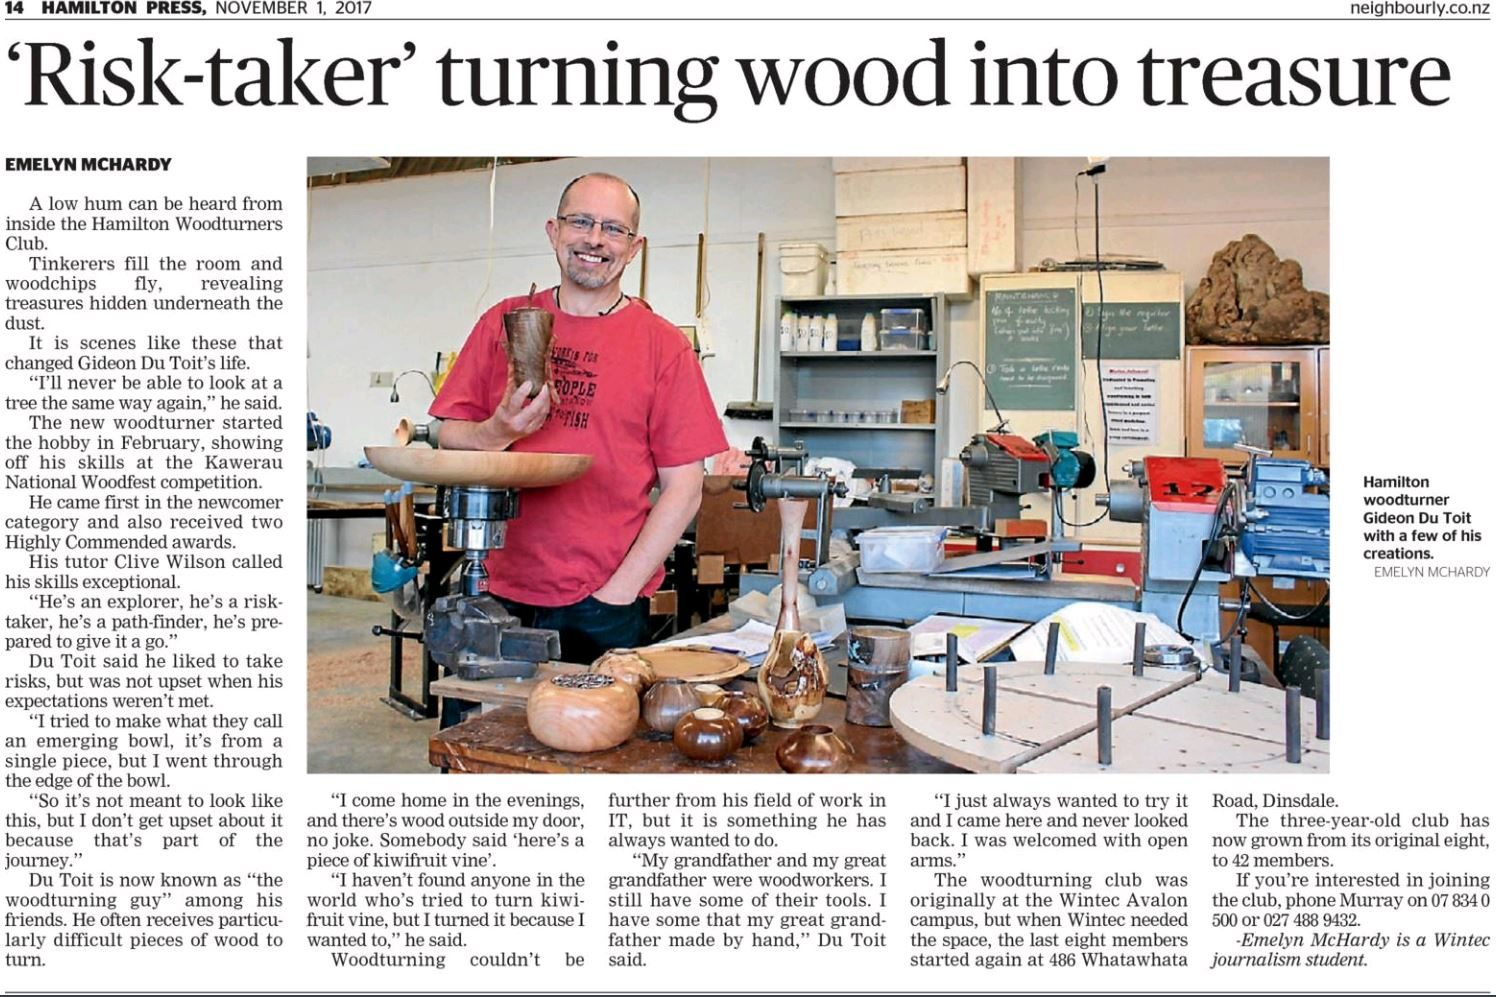 Article On Stuff Co Nz Journey Woodturning